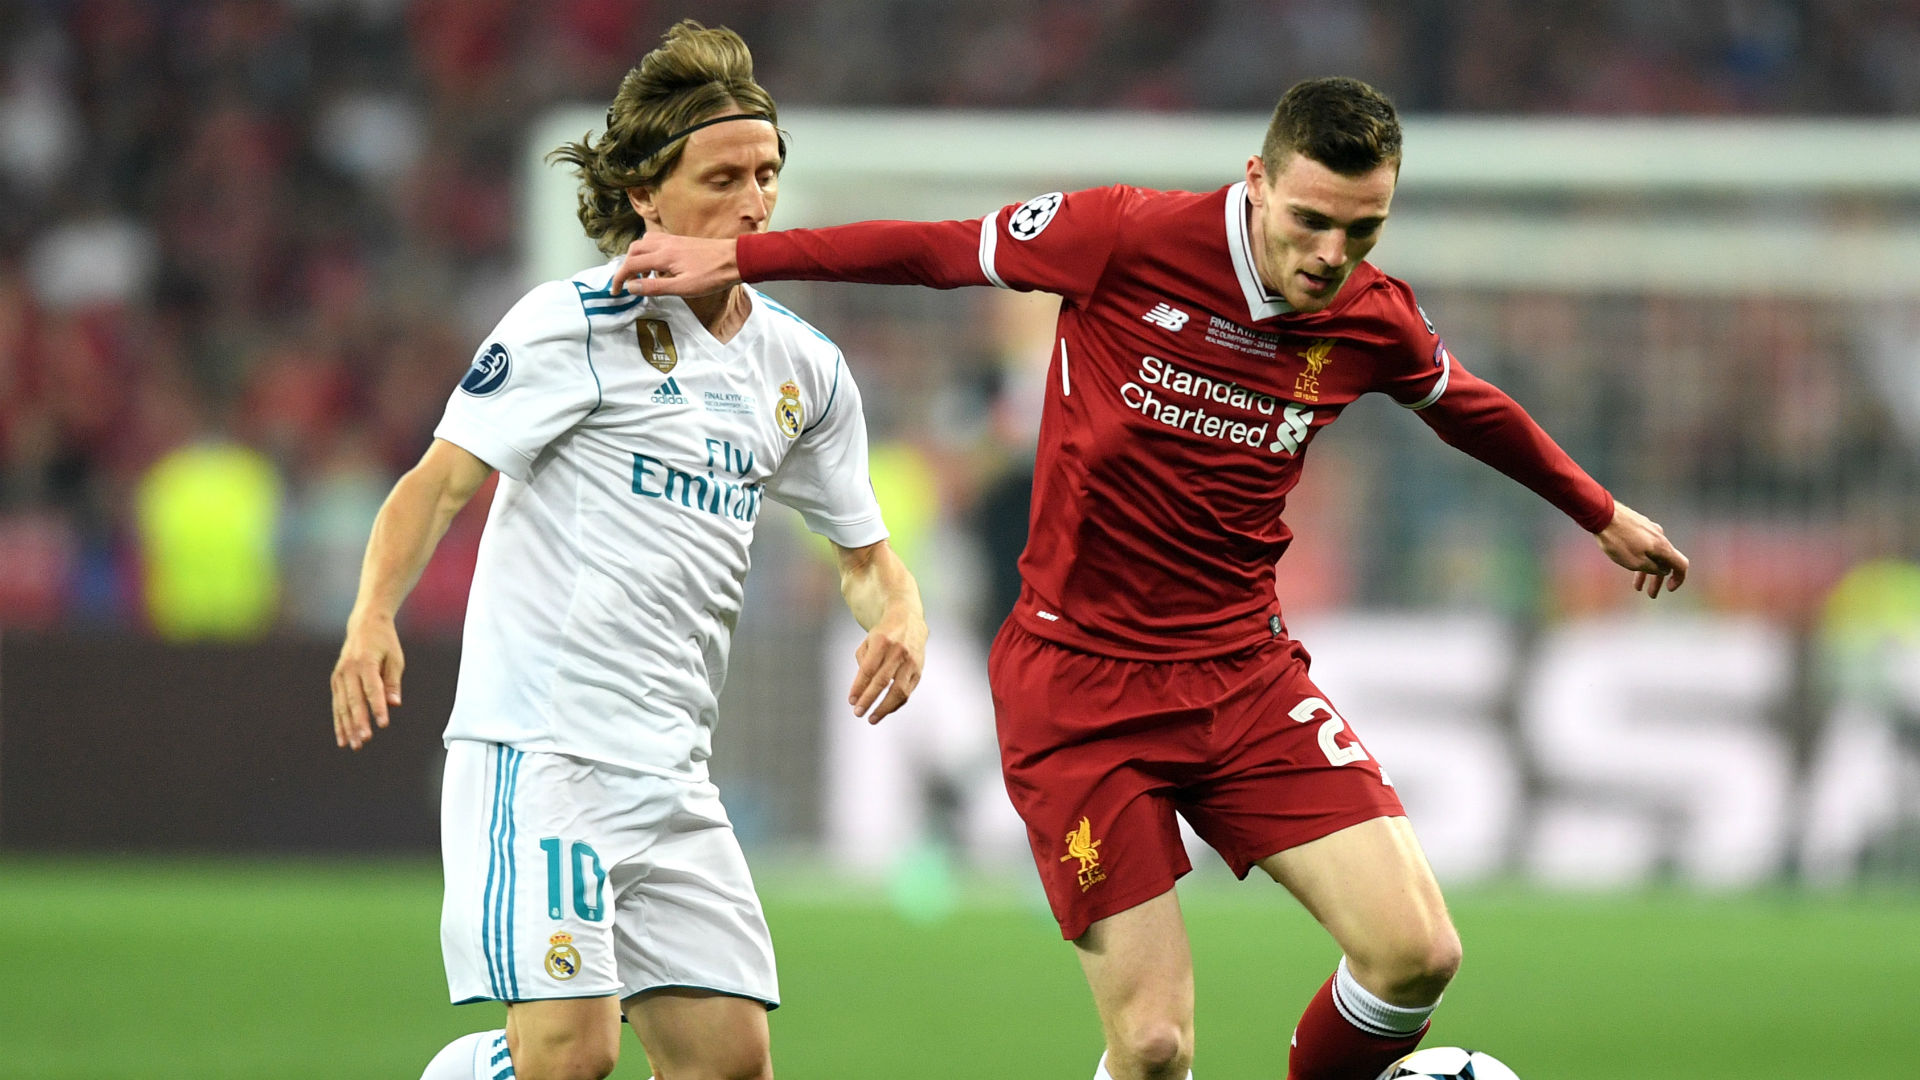 Liverpool Boss Klopp Excited For Champions League Rematch Against Real Madrid After 2018 Final Loss Goal Com